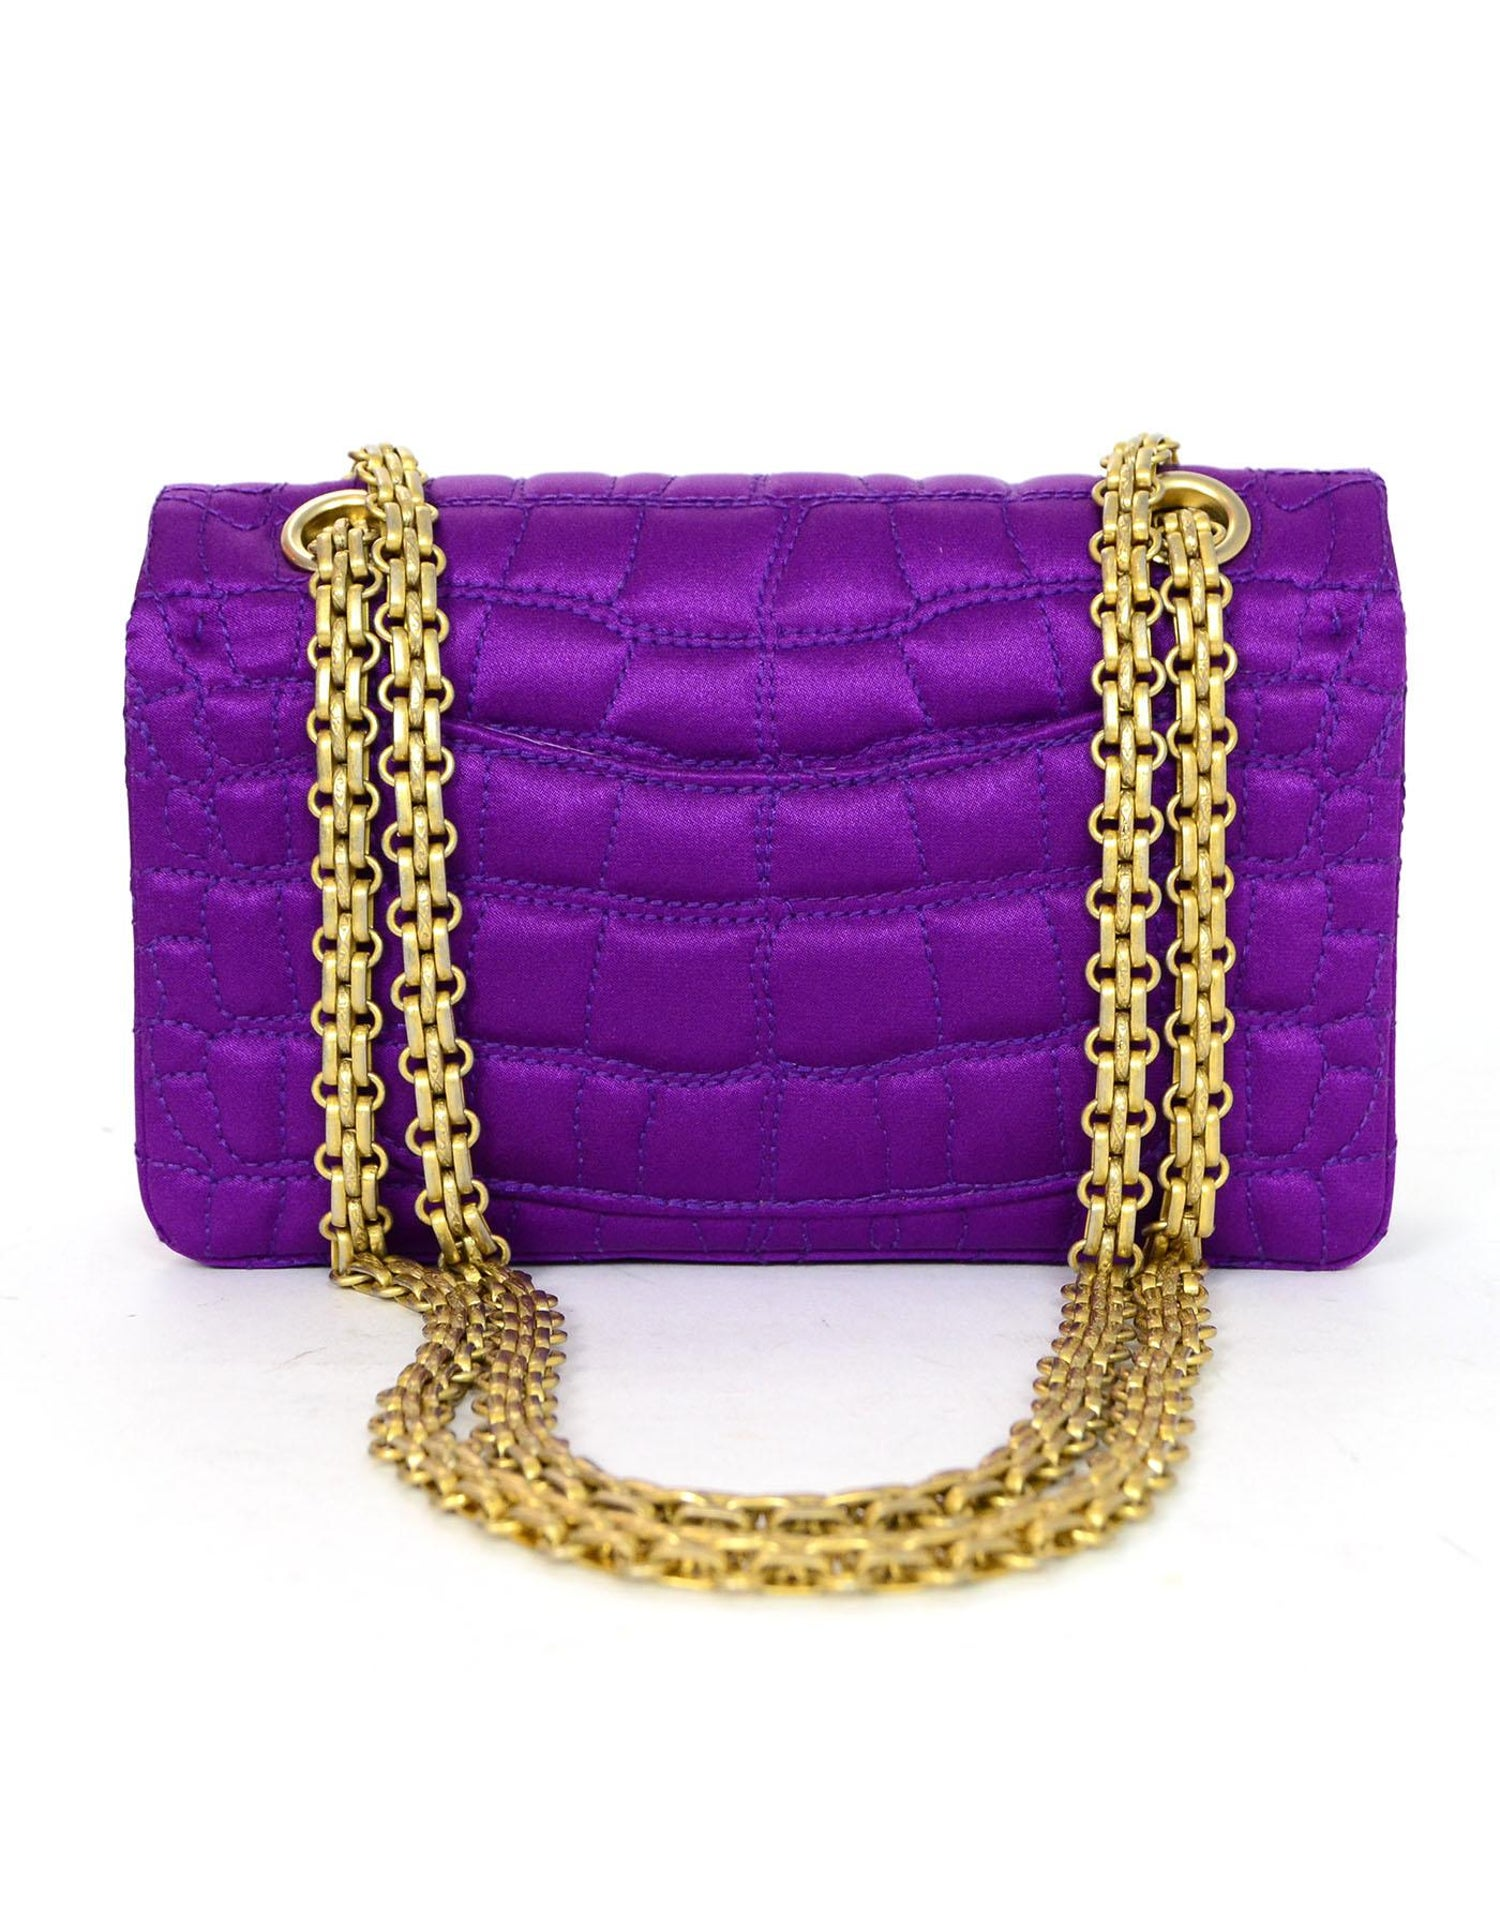 9677999b2b9e Chanel 2007 Purple Satin Croc Embroidered 2.55 Reissue 224 Crossbody Flap  Bag For Sale at 1stdibs